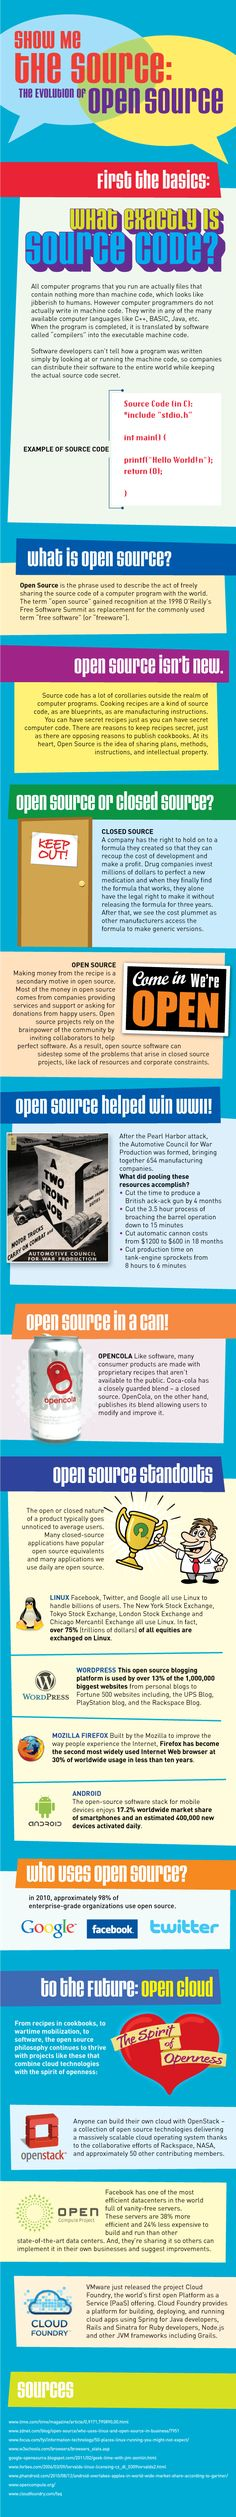 Infographic - Open Cloud Computing : History of Open Source Coding and the Open… Computer Technology, Educational Technology, Computer Science, Computer Tips, Data Science, Open Source Code, It Management, Open Architecture, Open Data